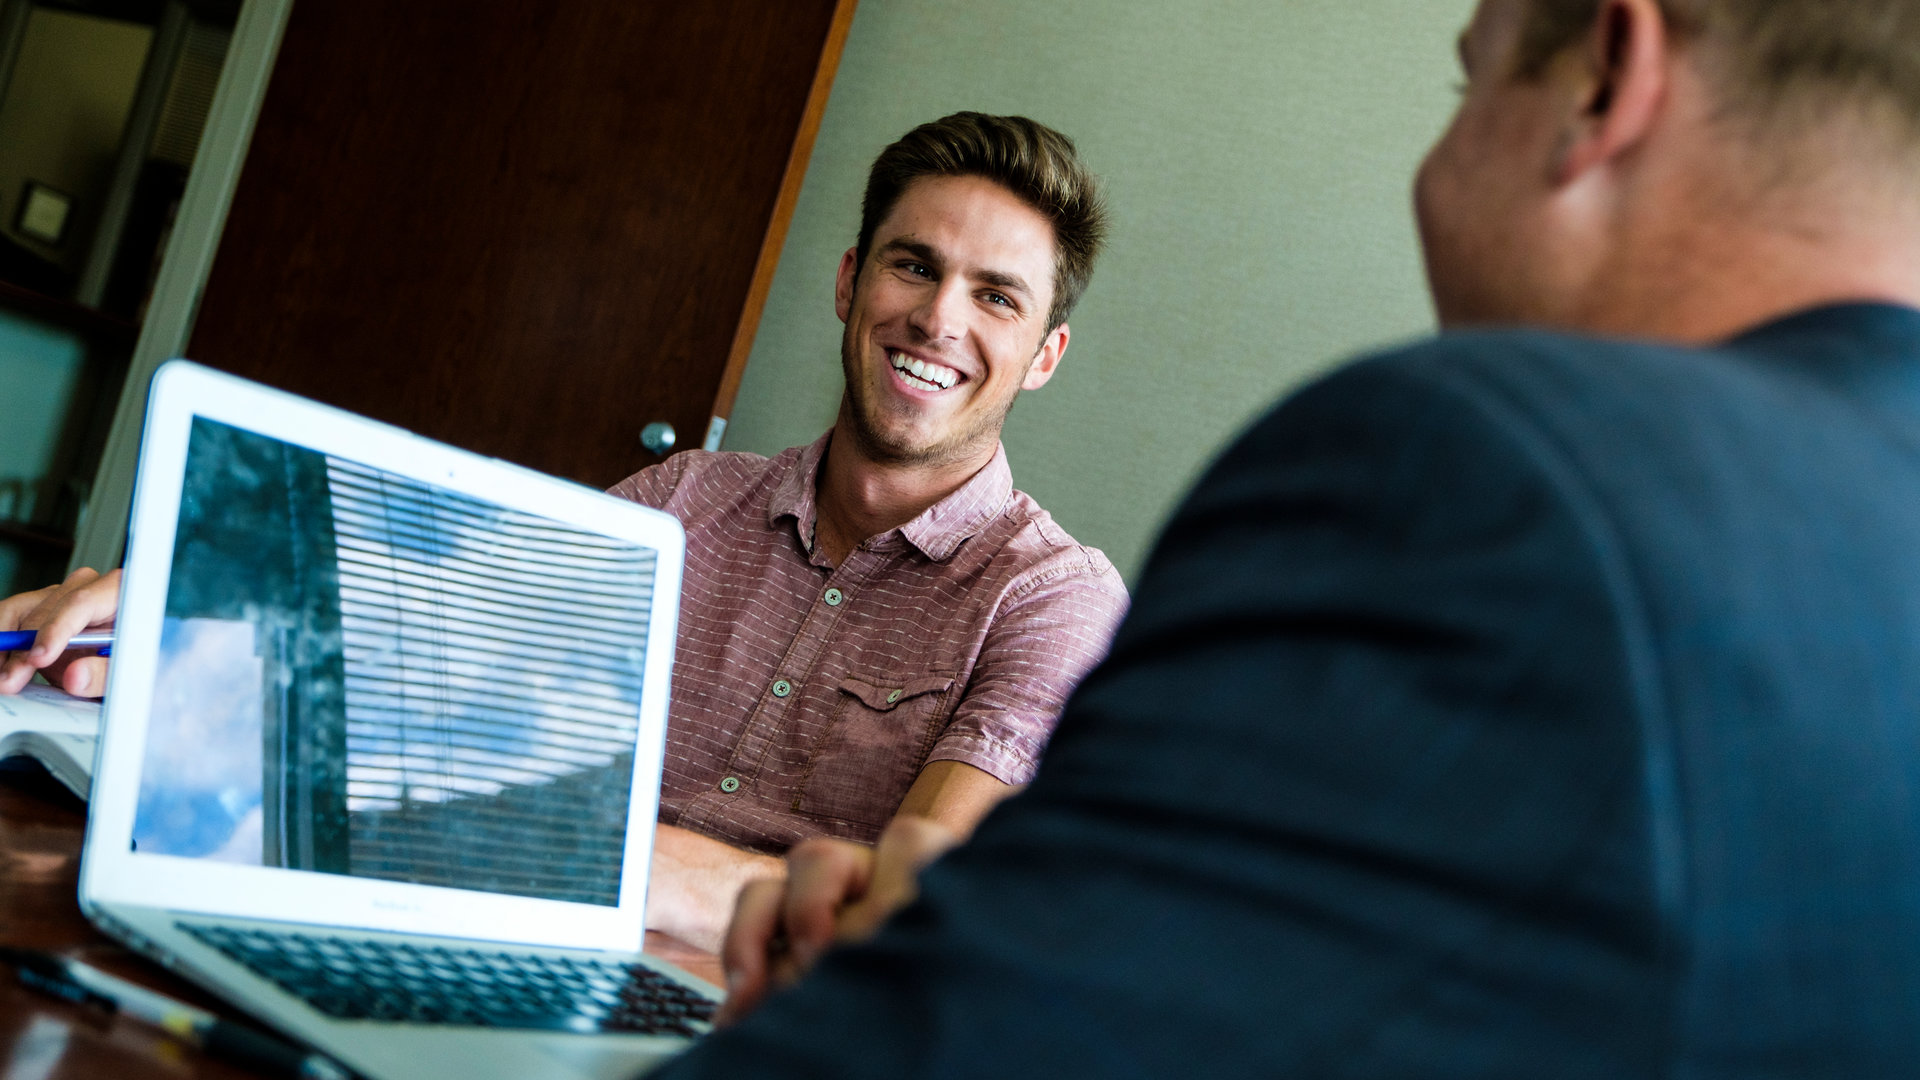 Student smiles while mentor looks at computer